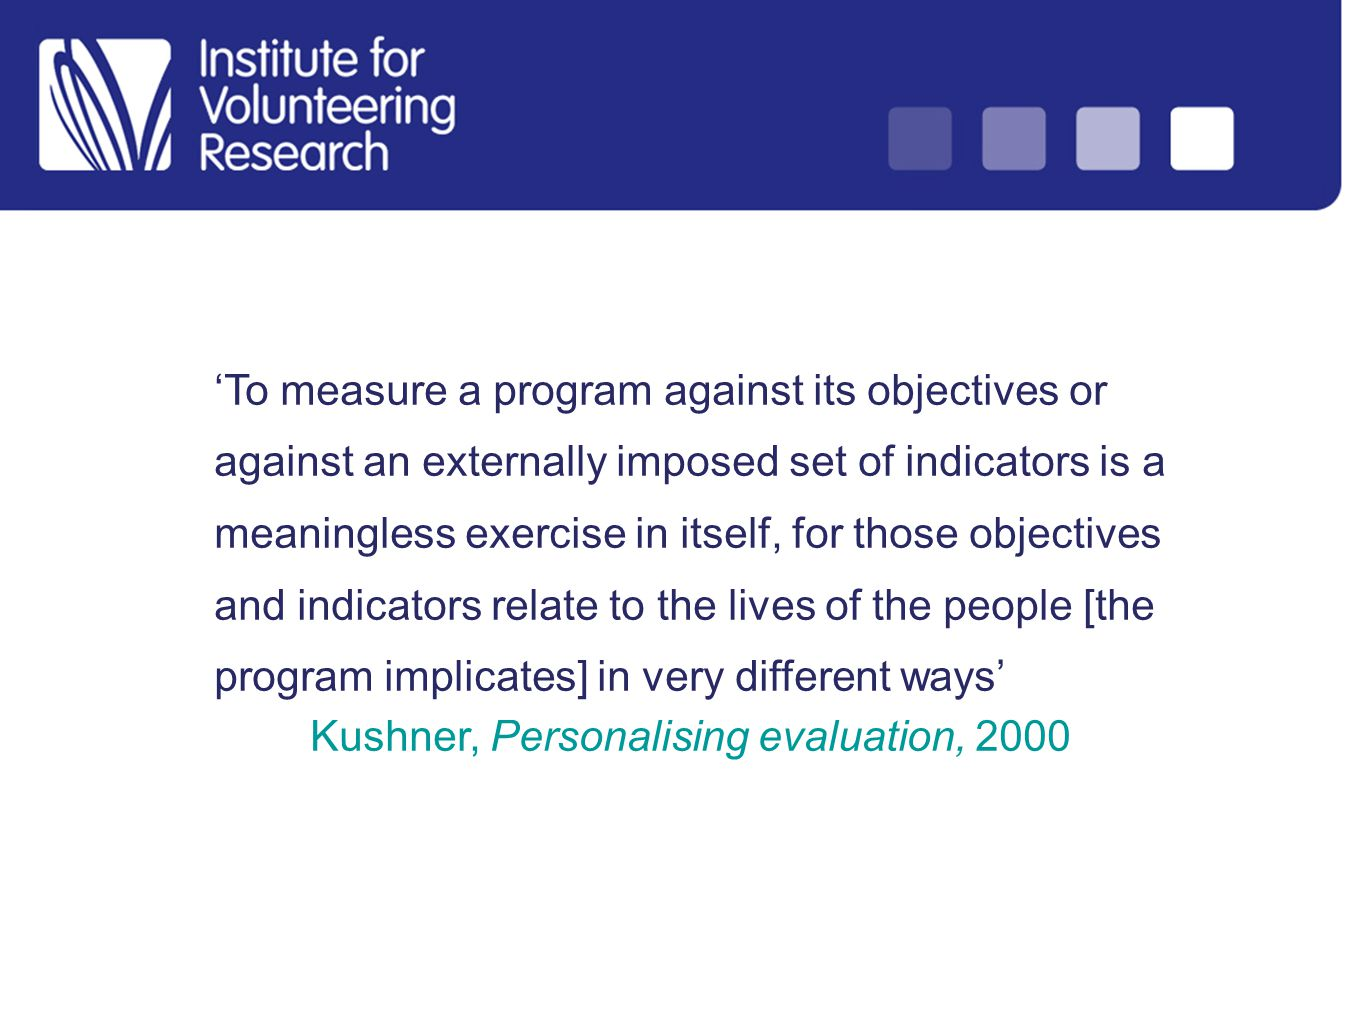 To measure a program against its objectives or against an externally imposed set of indicators is a meaningless exercise in itself, for those objectives and indicators relate to the lives of the people [the program implicates] in very different ways Kushner, Personalising evaluation, 2000